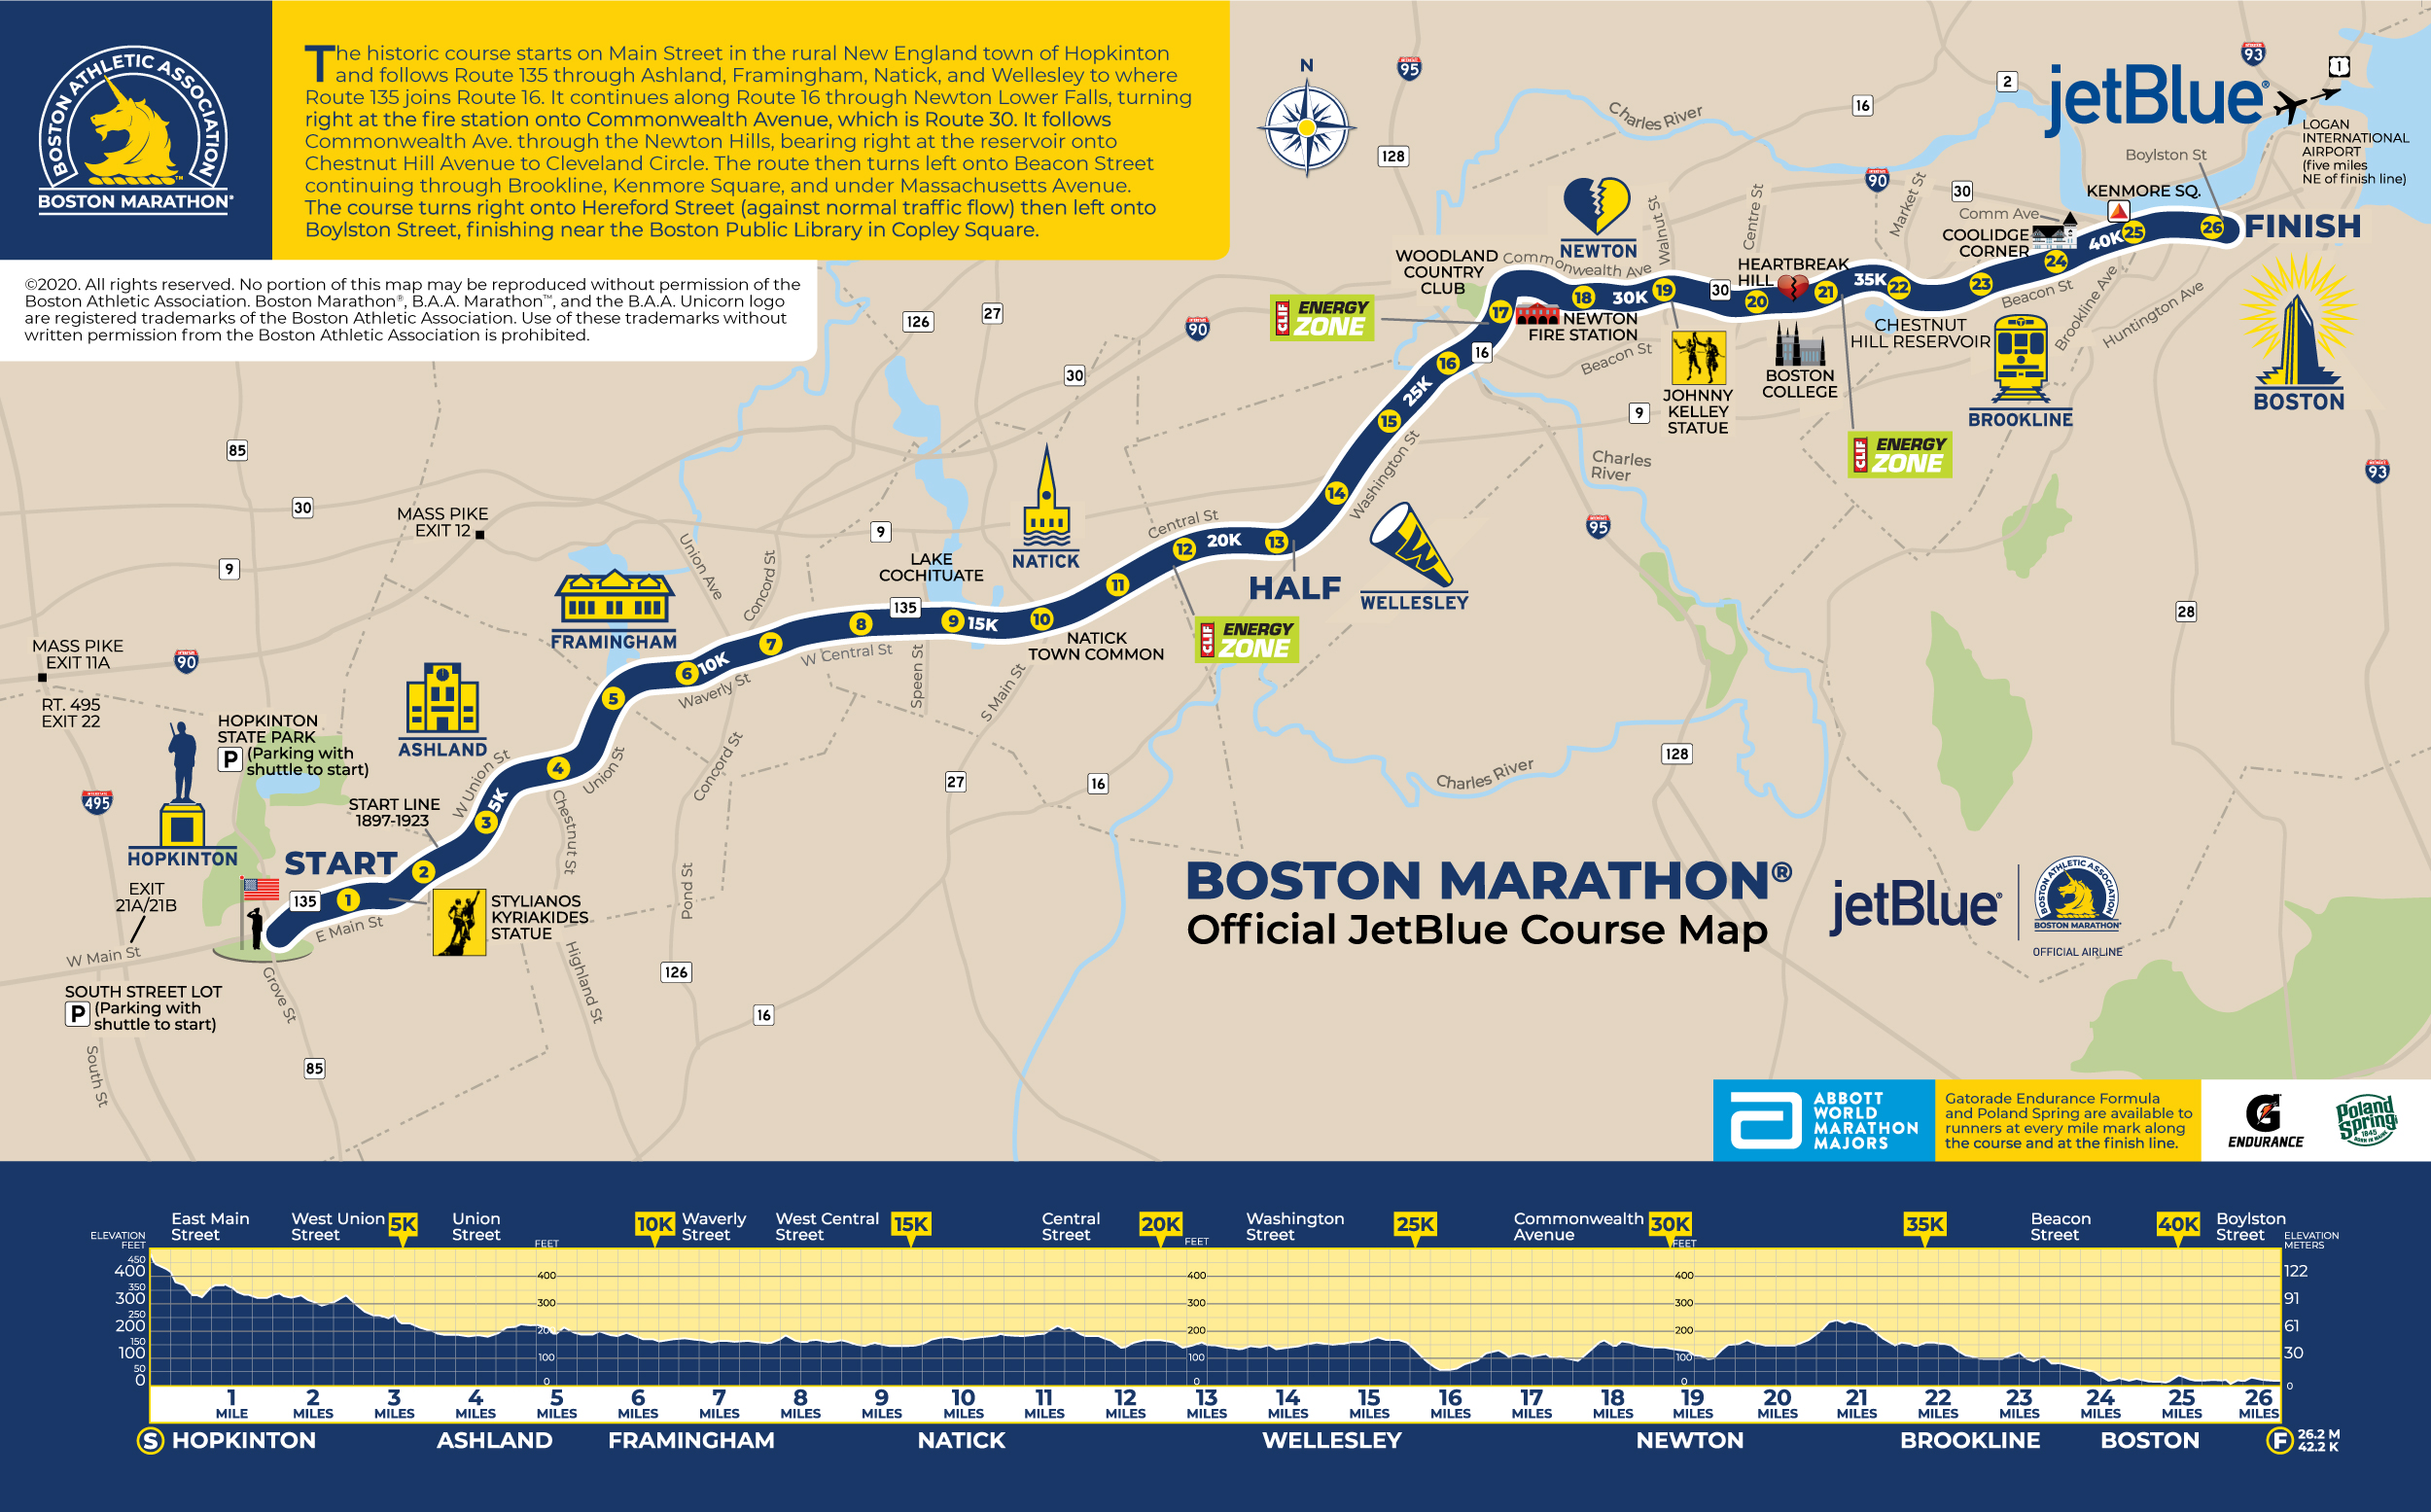 Annual route of Boston Marathon